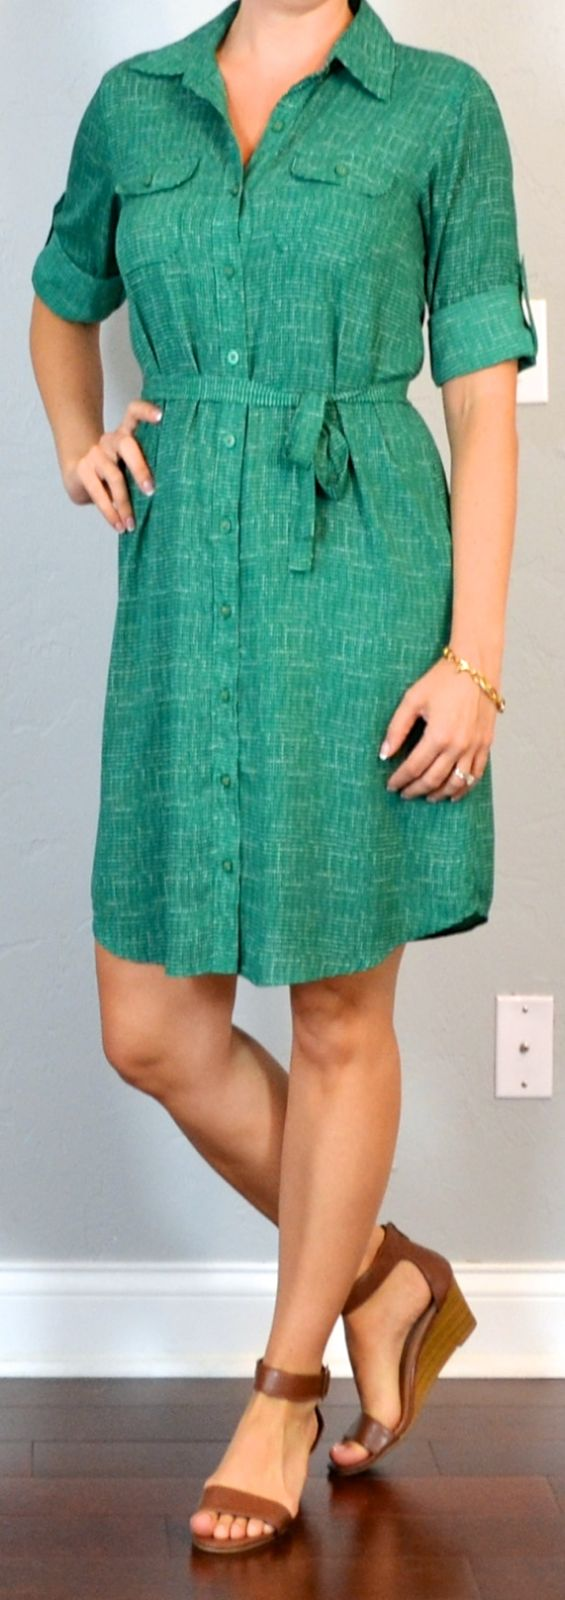 Outfit Posts: outfit post: green shirt dress, brown wedge sandals